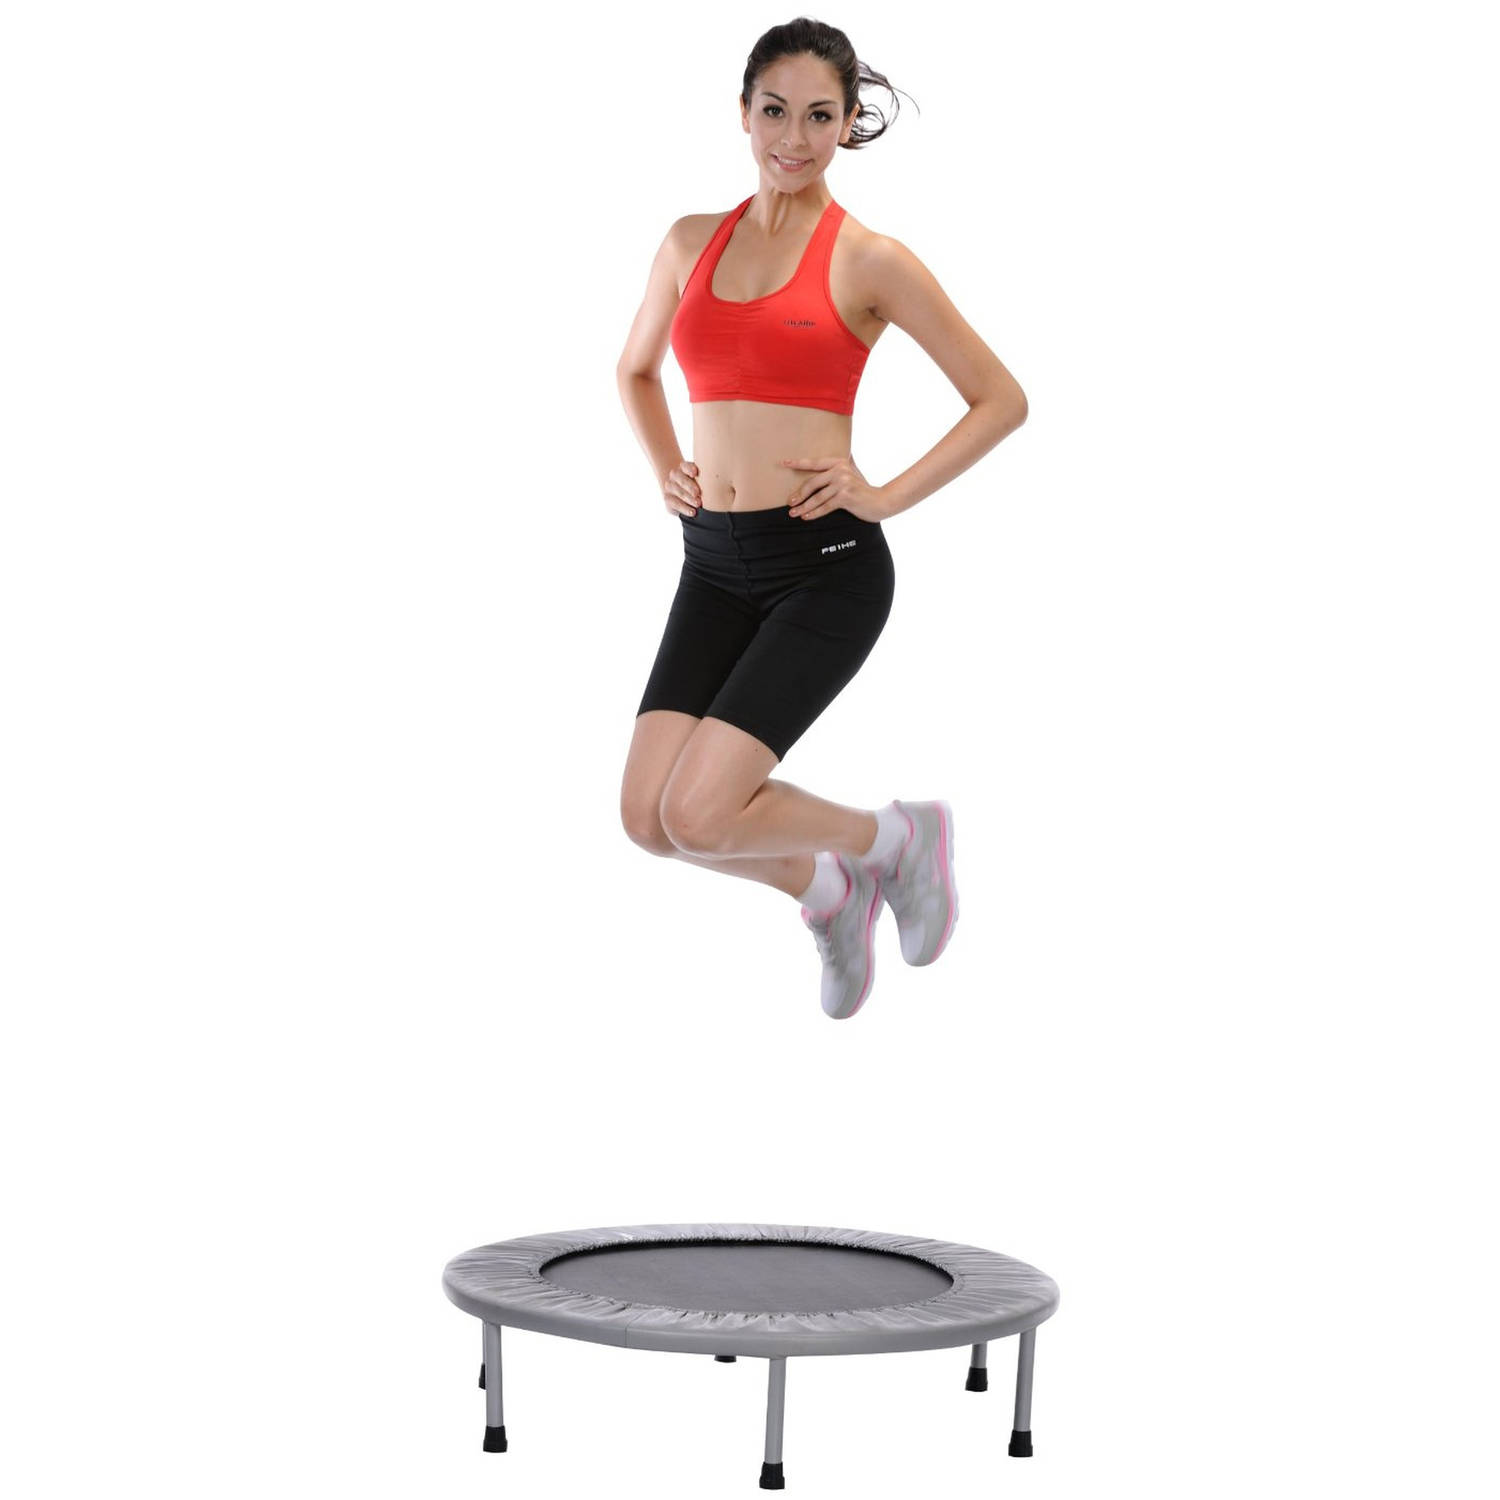 36 mini gym trampoline indoor outdoor round spring pad exercise jumping workout ebay. Black Bedroom Furniture Sets. Home Design Ideas